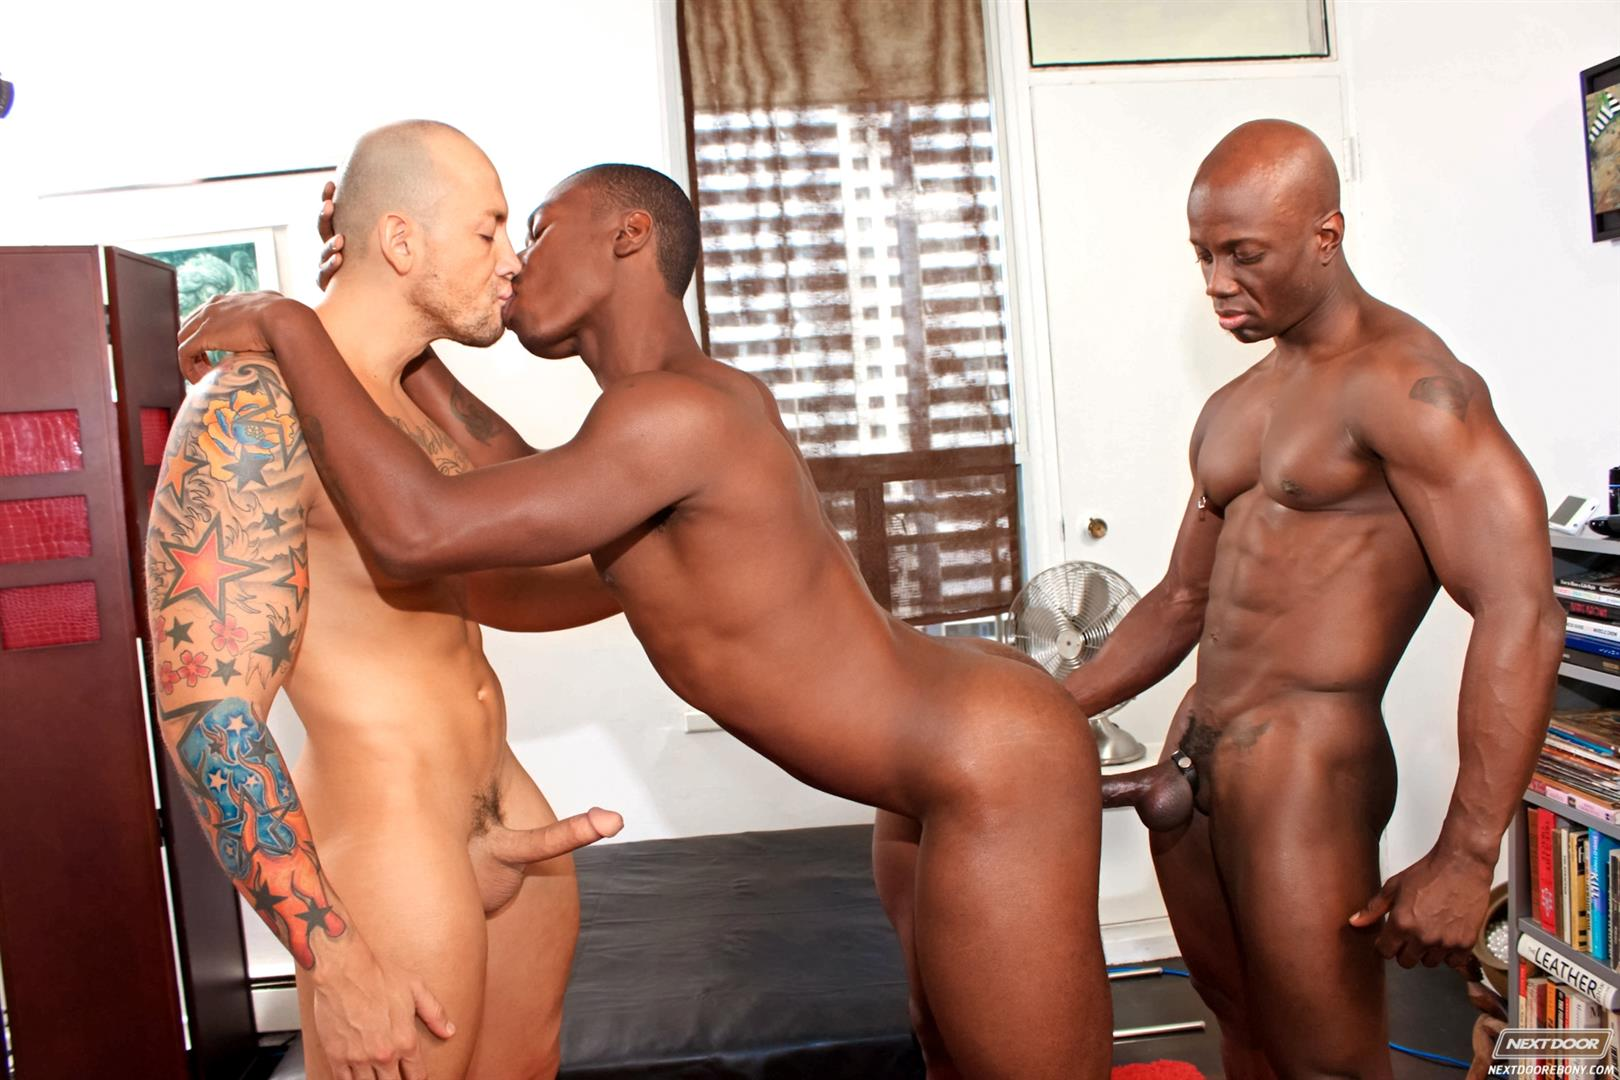 Next Door Ebony Jordano Santoro and Jay Black and Damian Brooks Interracial Gay Fucking Threeway Amateur Gay Porn 12 Interracial Muscle Couple Picks Up A Black Muscle Stud In The Park